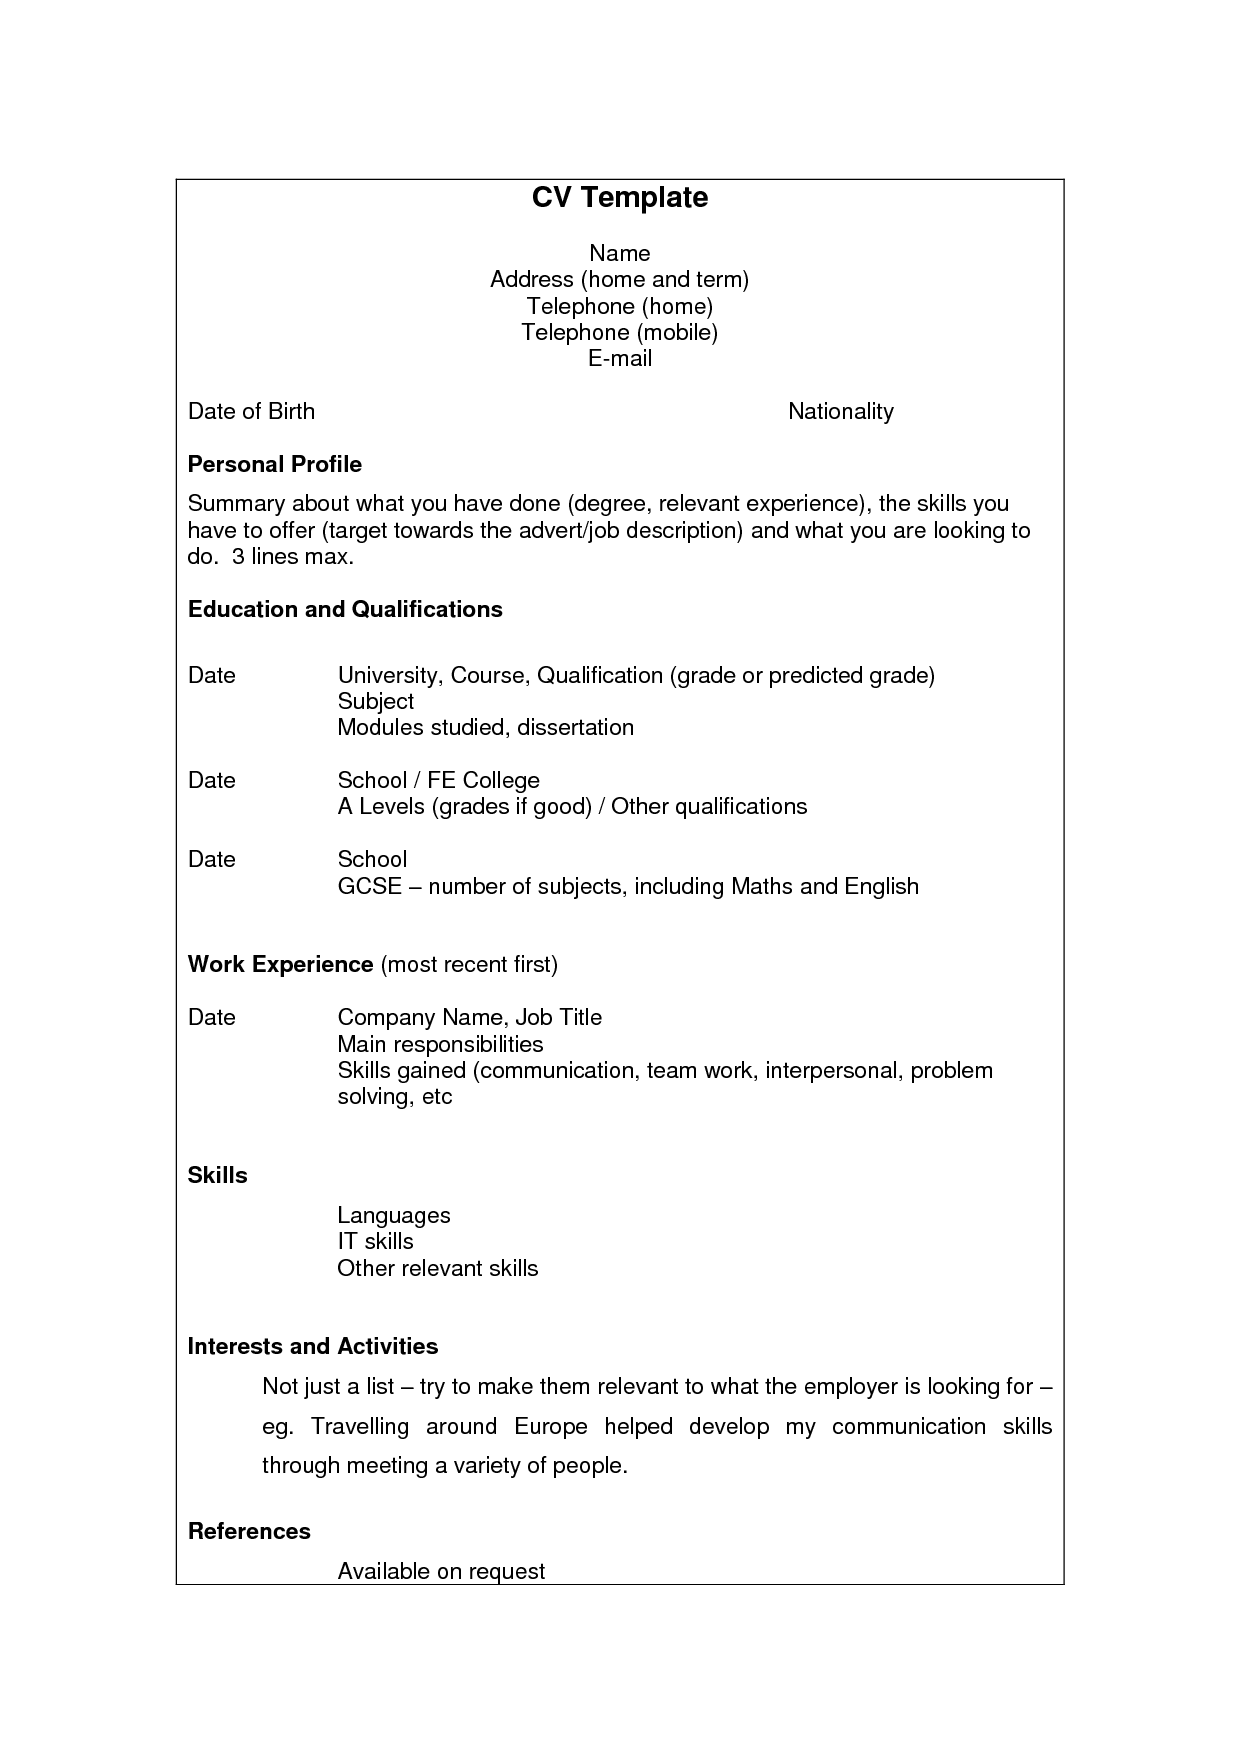 Resume English Name Application Letter For Teacher Chronological